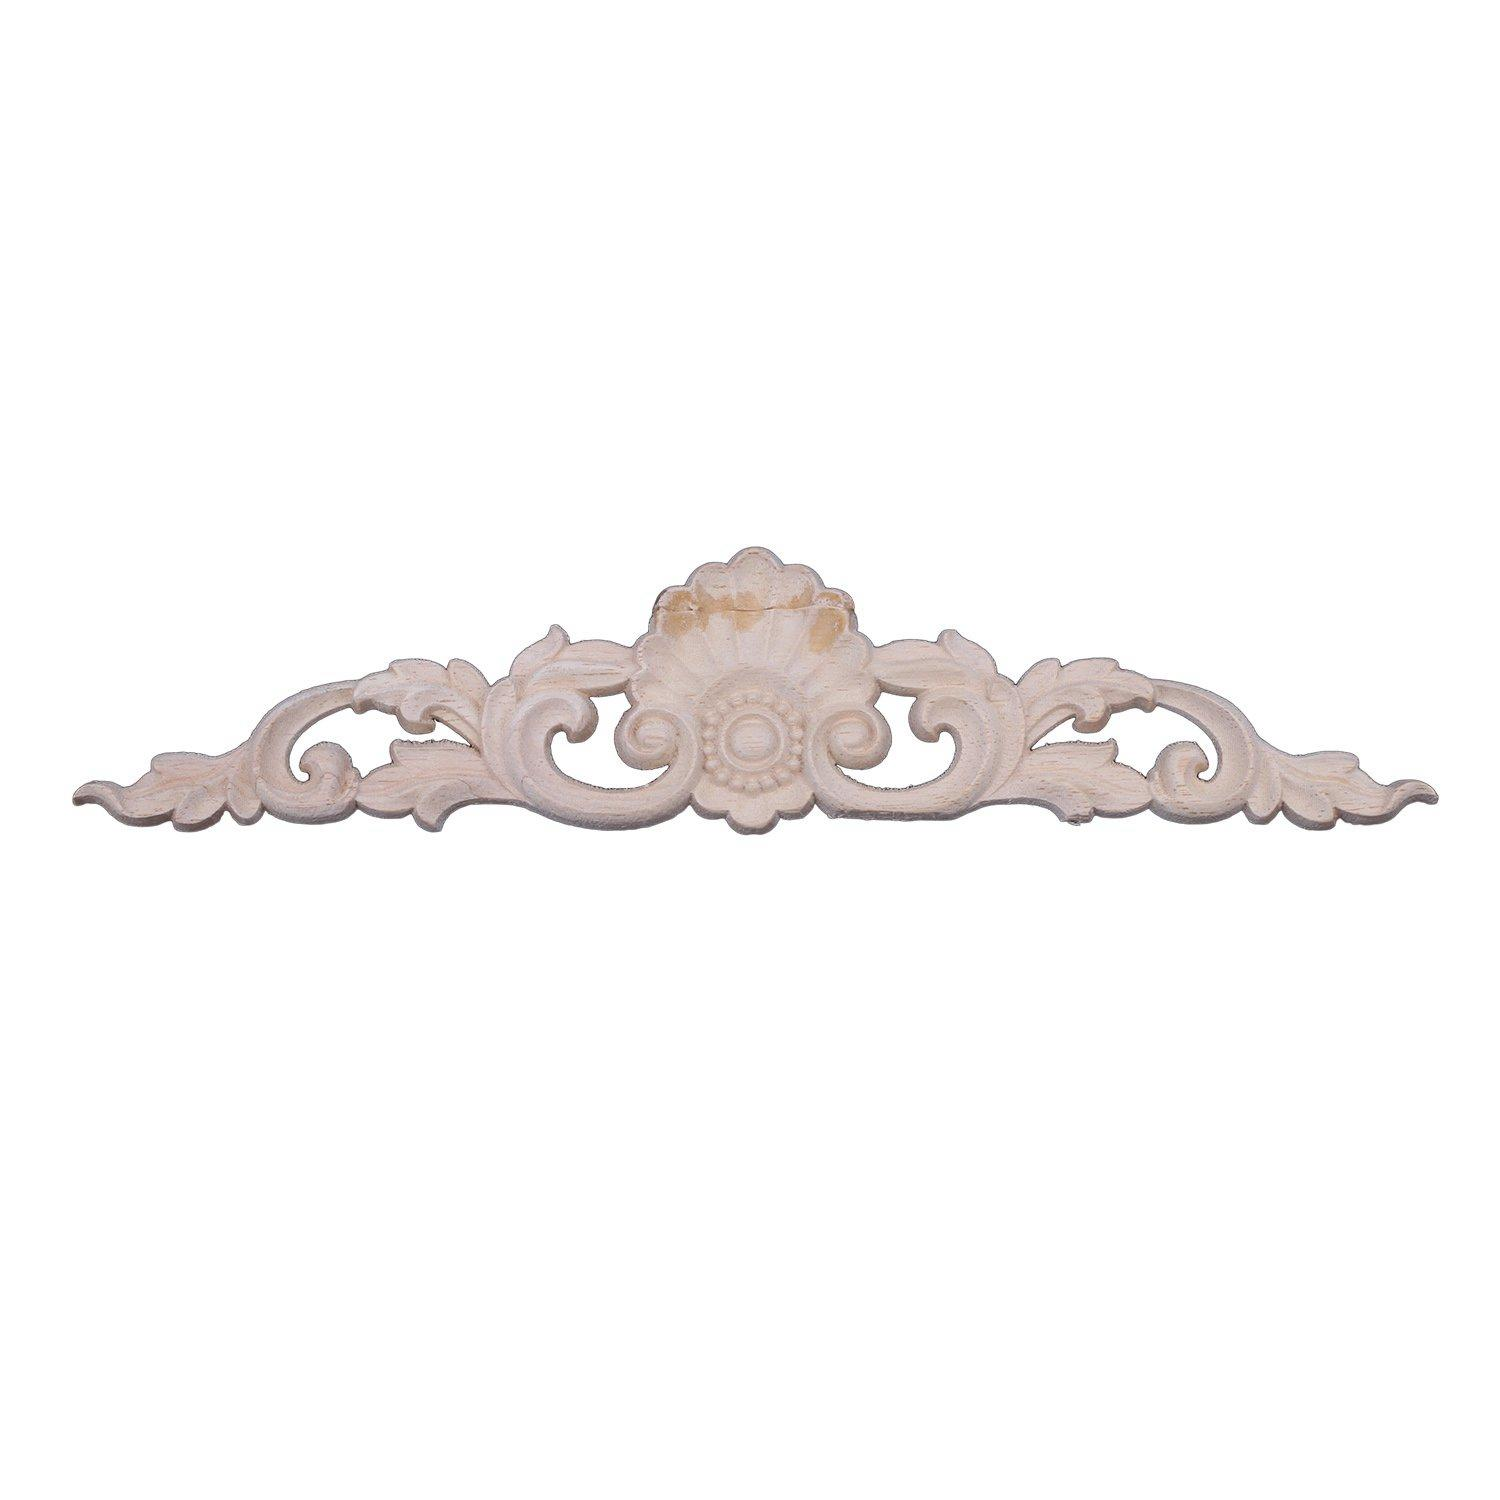 New 1pcs Rubber Wood Carved Corner Onlay Applique Furniture Home Decor(30*7cm) By Ertic.